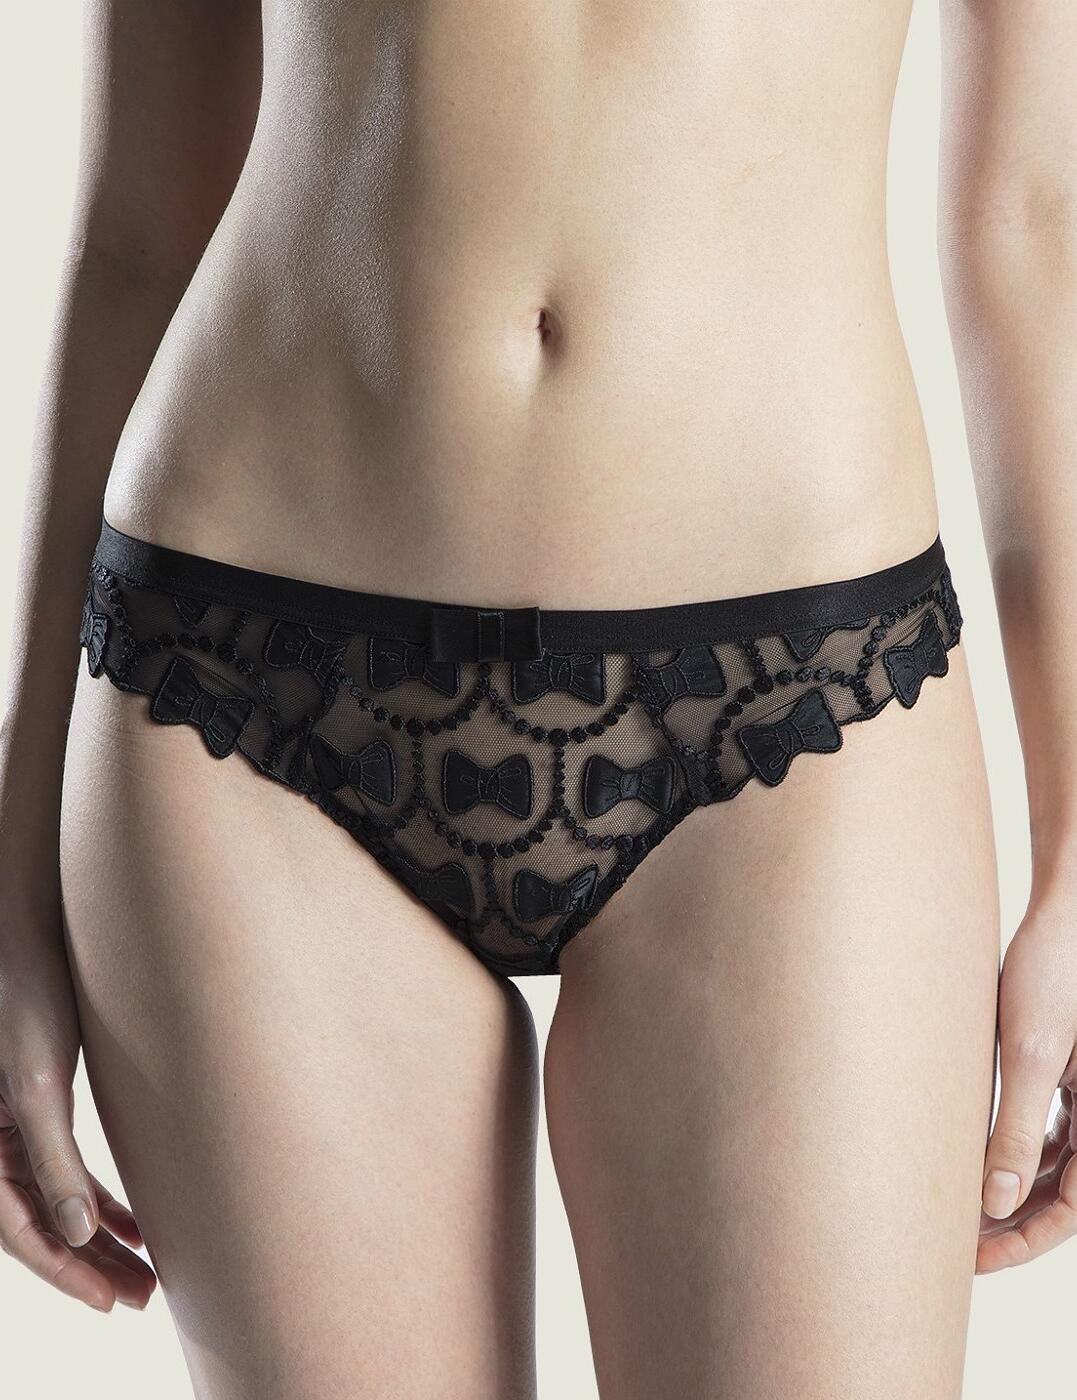 Aubade Viktor & Rolf The Bow Collection Brazilian Brief Soir